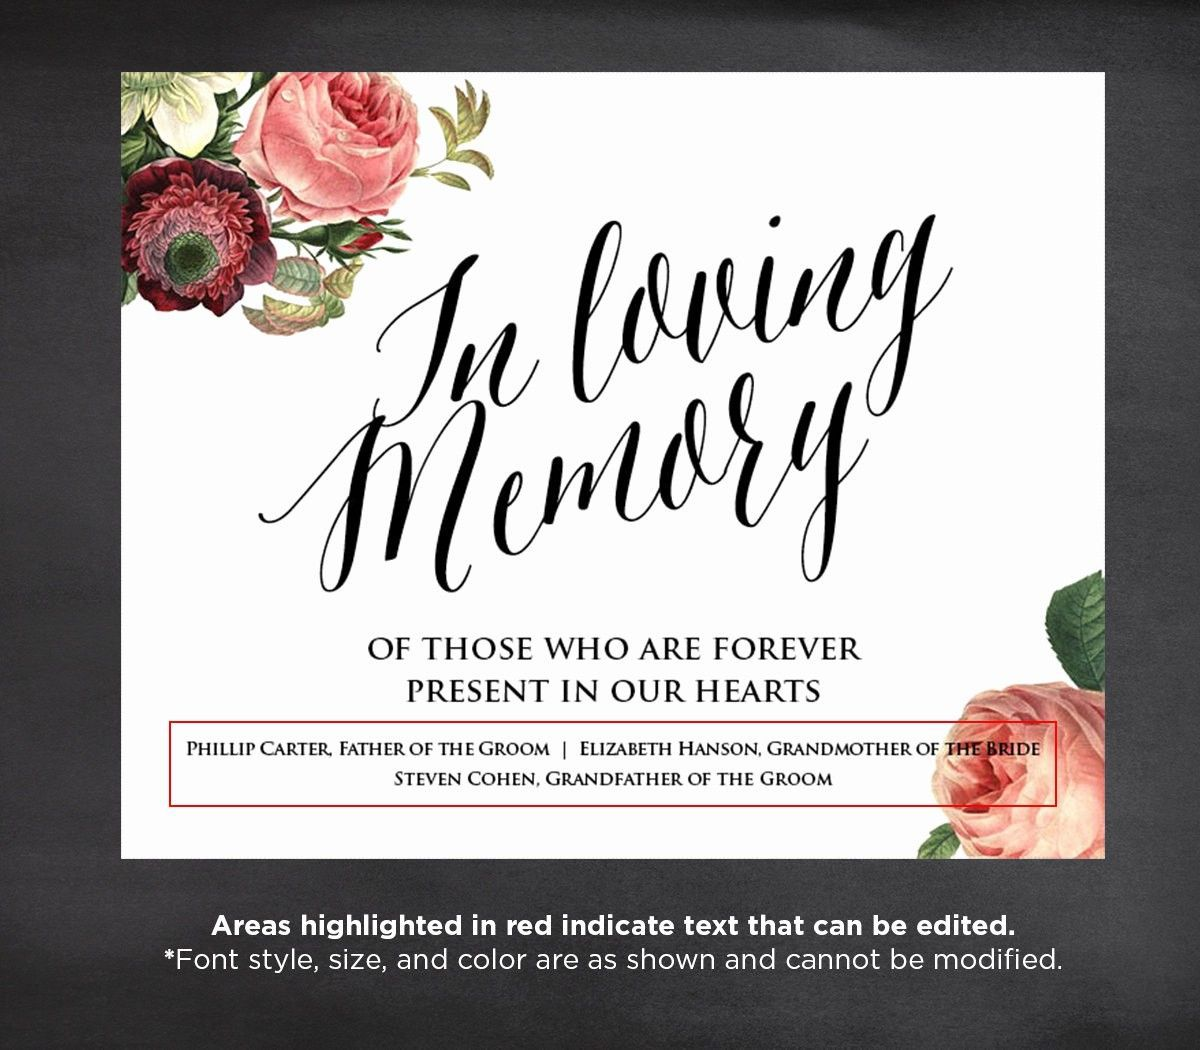 006 Impressive In Loving Memory Powerpoint Template Free Picture Full